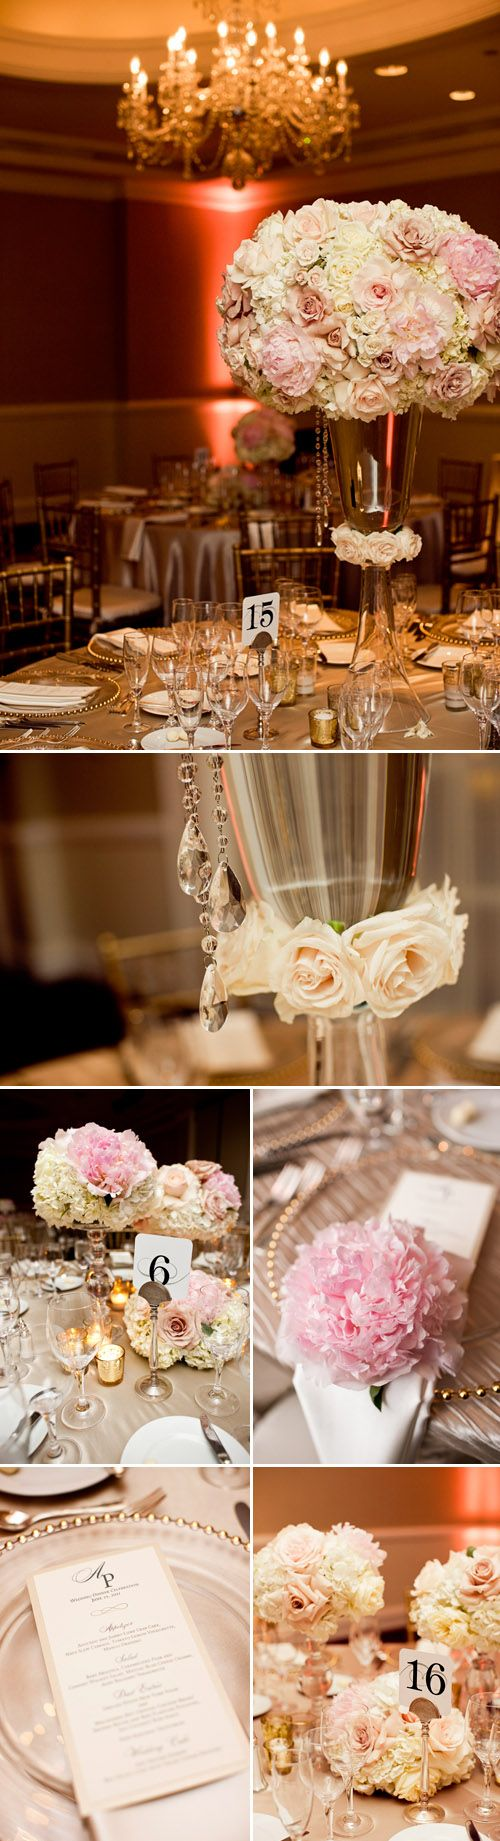 1000 images about fairy tale wedding on pinterest for Wedding reception centrepieces